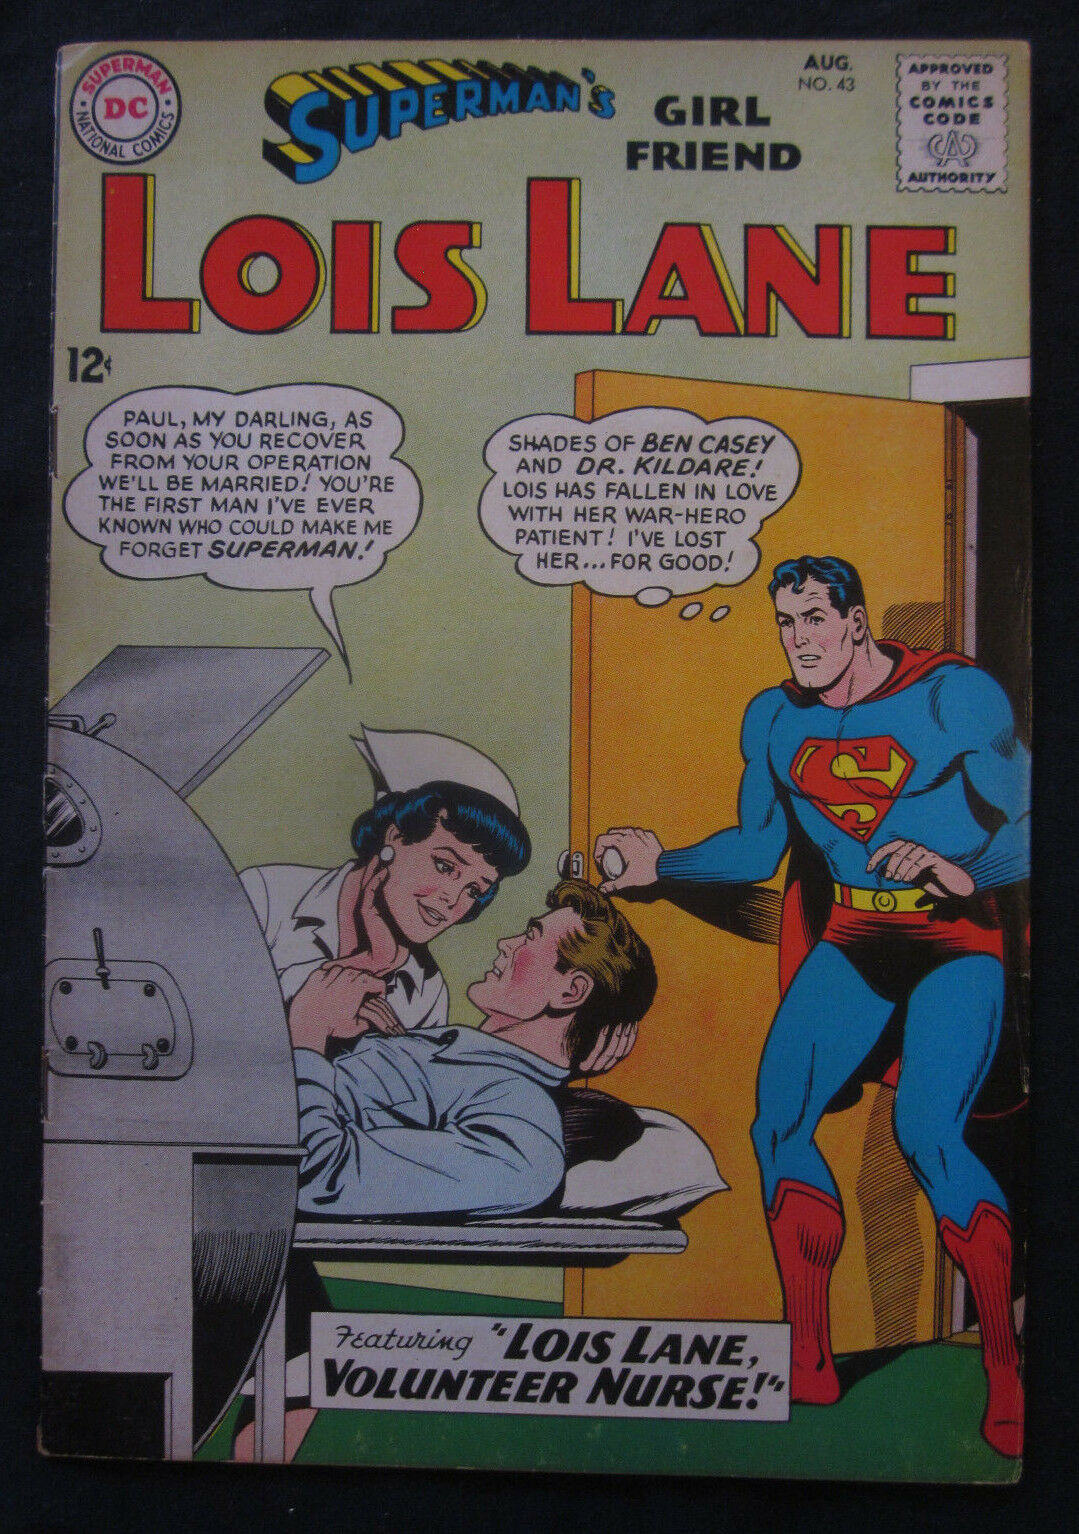 Supermans girl friend lois lane 43 aug 1963 dc ebay resntentobalflowflowcomponenttechnicalissues thecheapjerseys Gallery